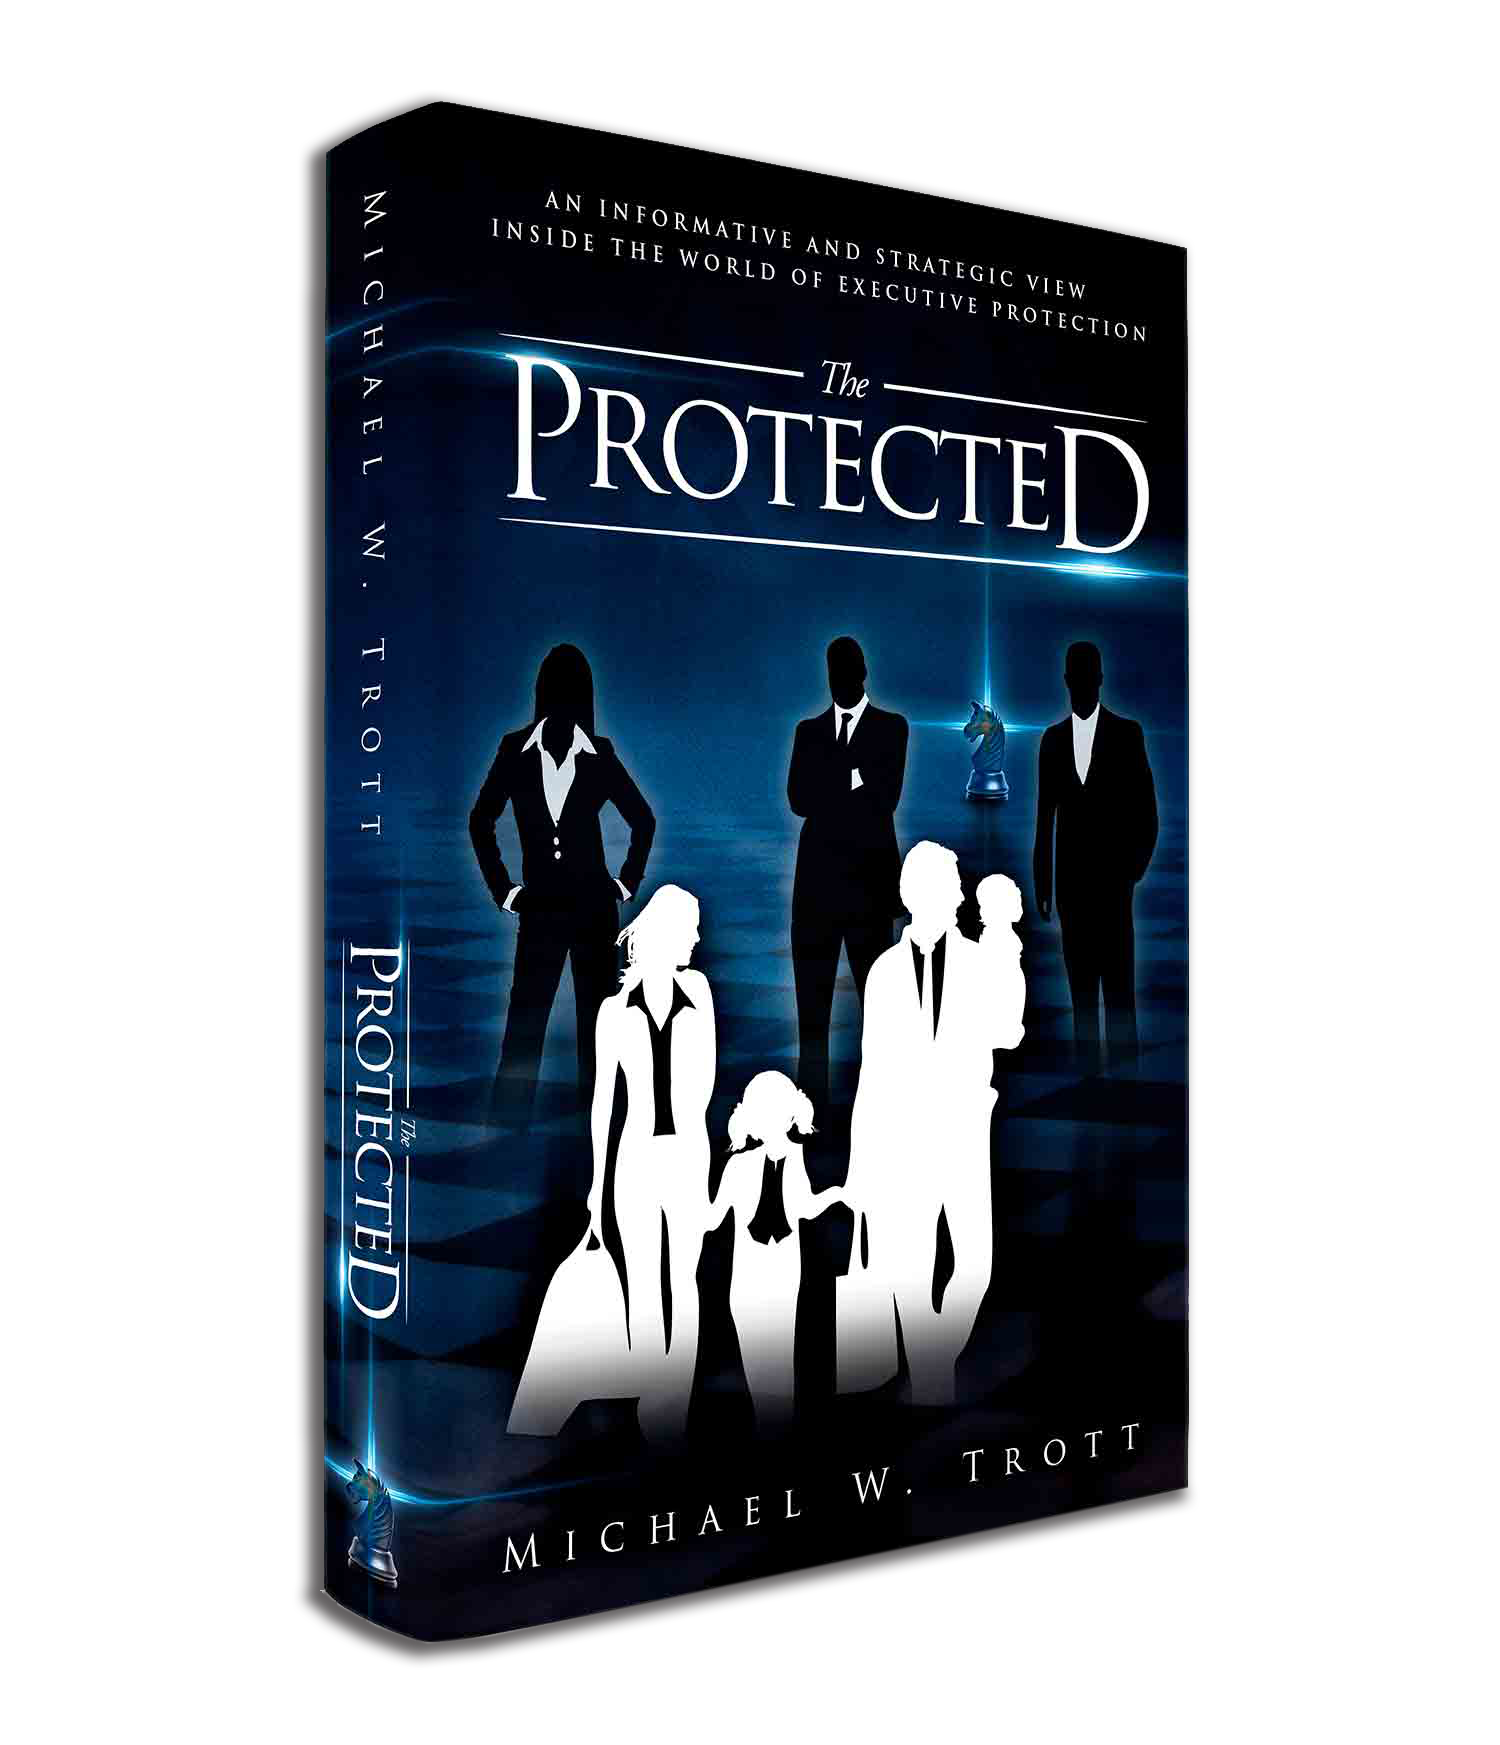 The Protected by Michael Trott.